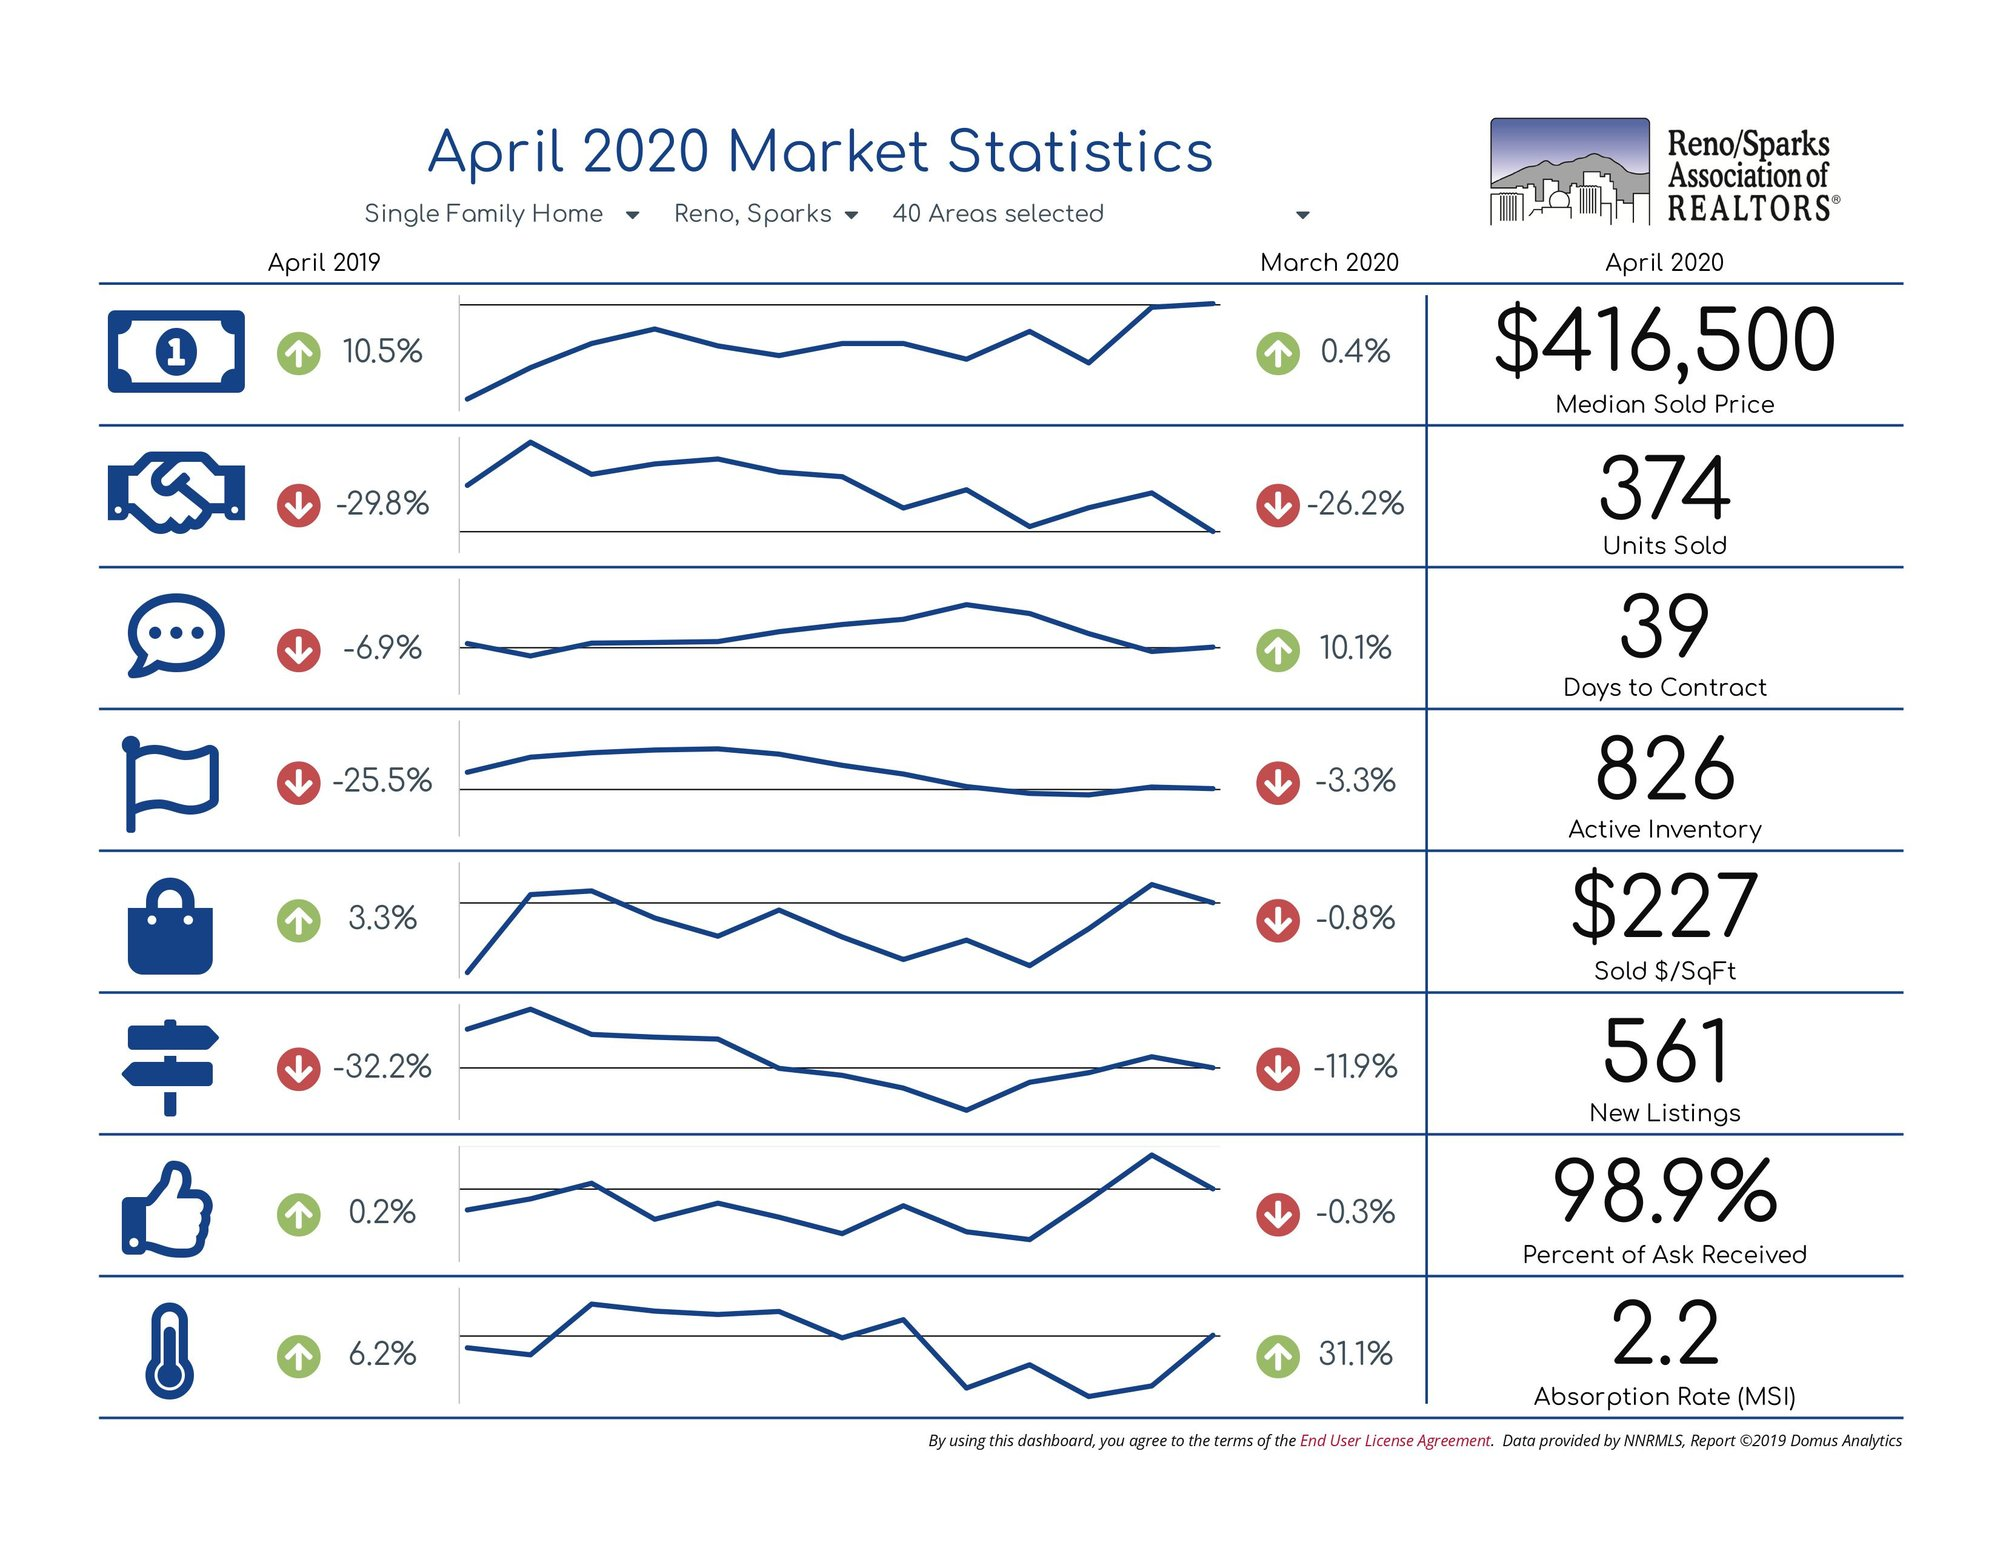 Single Family Home Statistics Reno Sparks